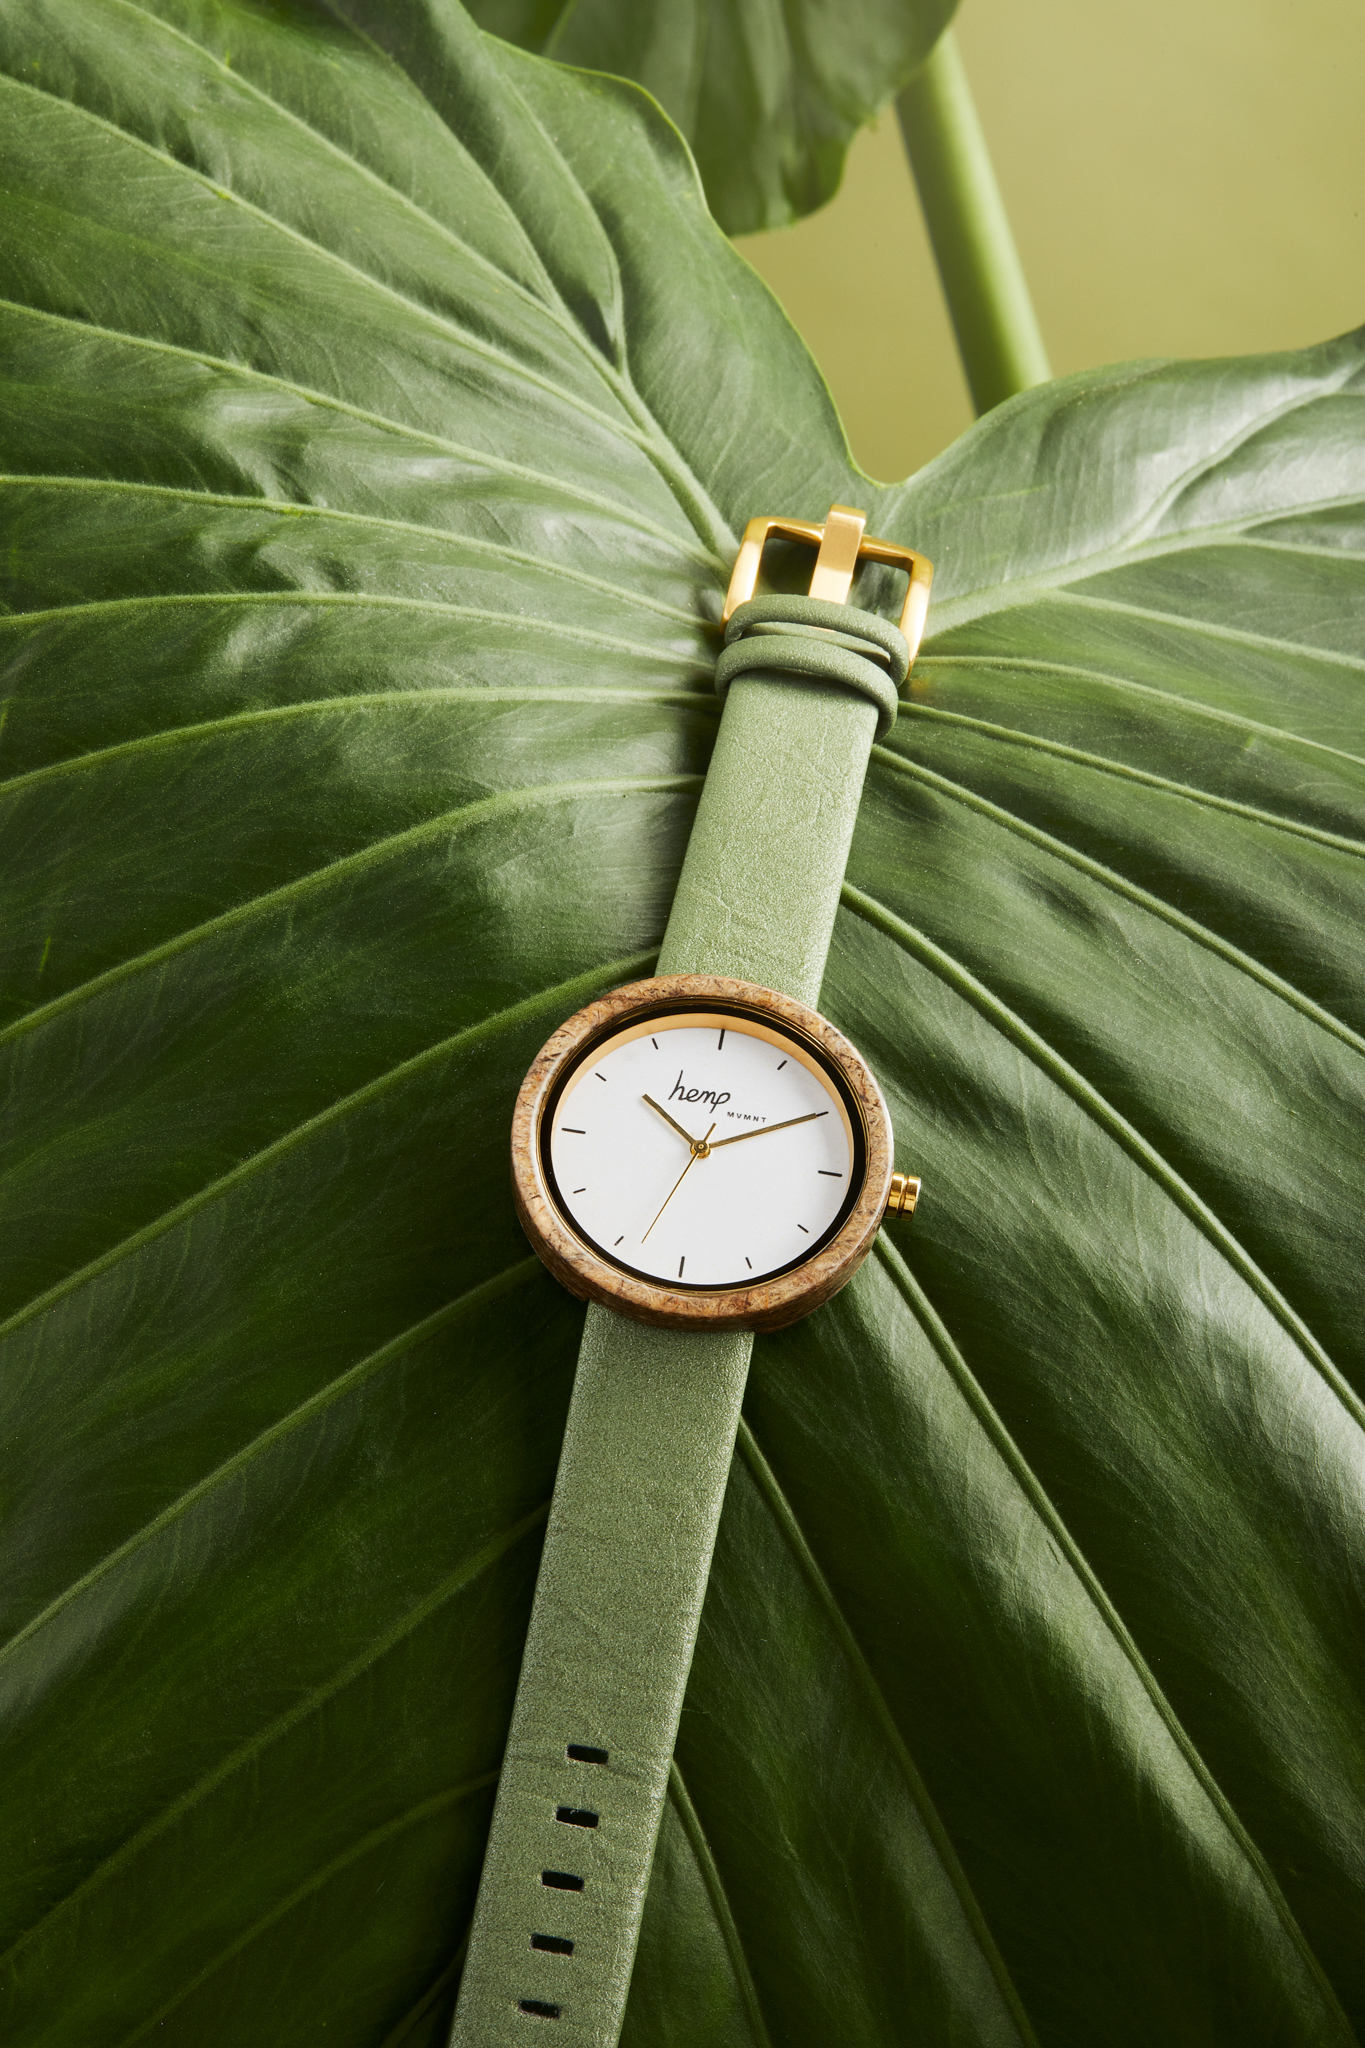 The world's first hemp watch, to be released on April 13th.